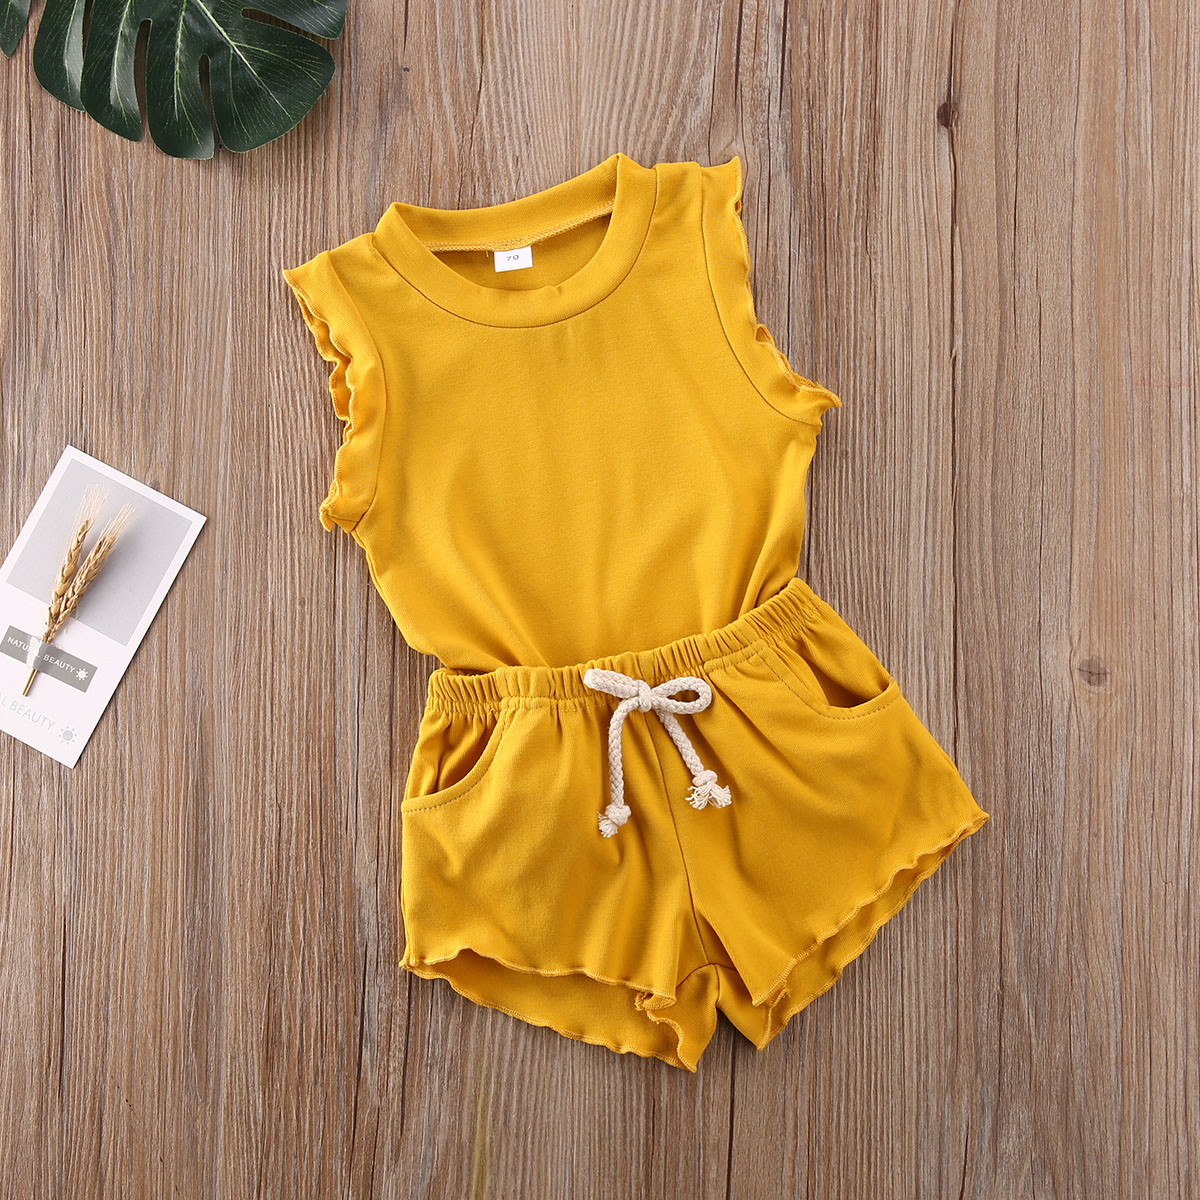 2PCS Newborn Kid Baby Toddler Girl Solid Clothes Tops Shorts Outfits Set Sunsuit